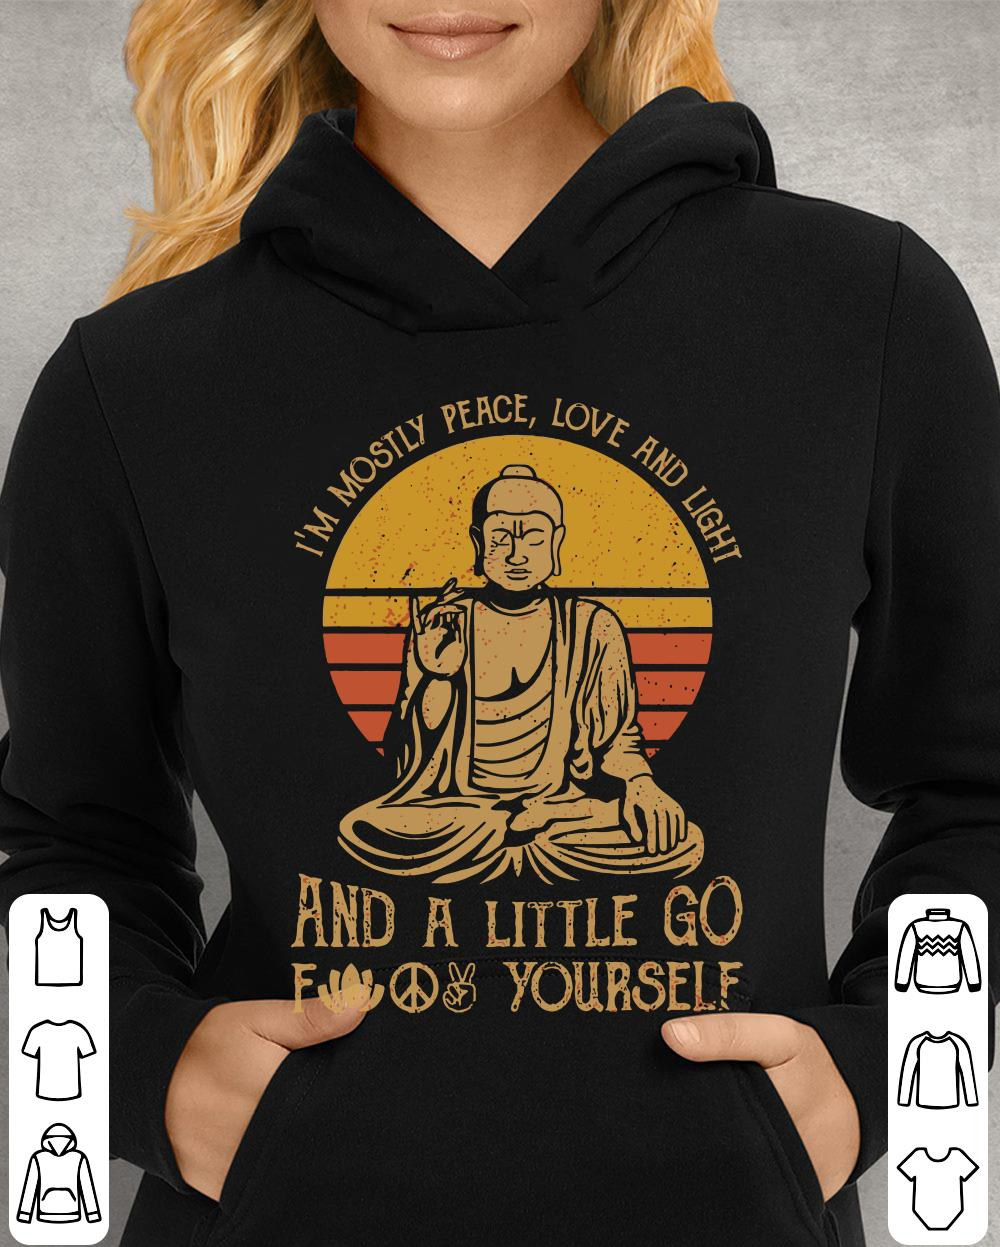 https://unicornshirts.net/images/2019/01/Buddha-Yoga-I-m-mostly-peace-love-and-light-and-a-little-go-fuck-yourself-shirt_4-1.jpg